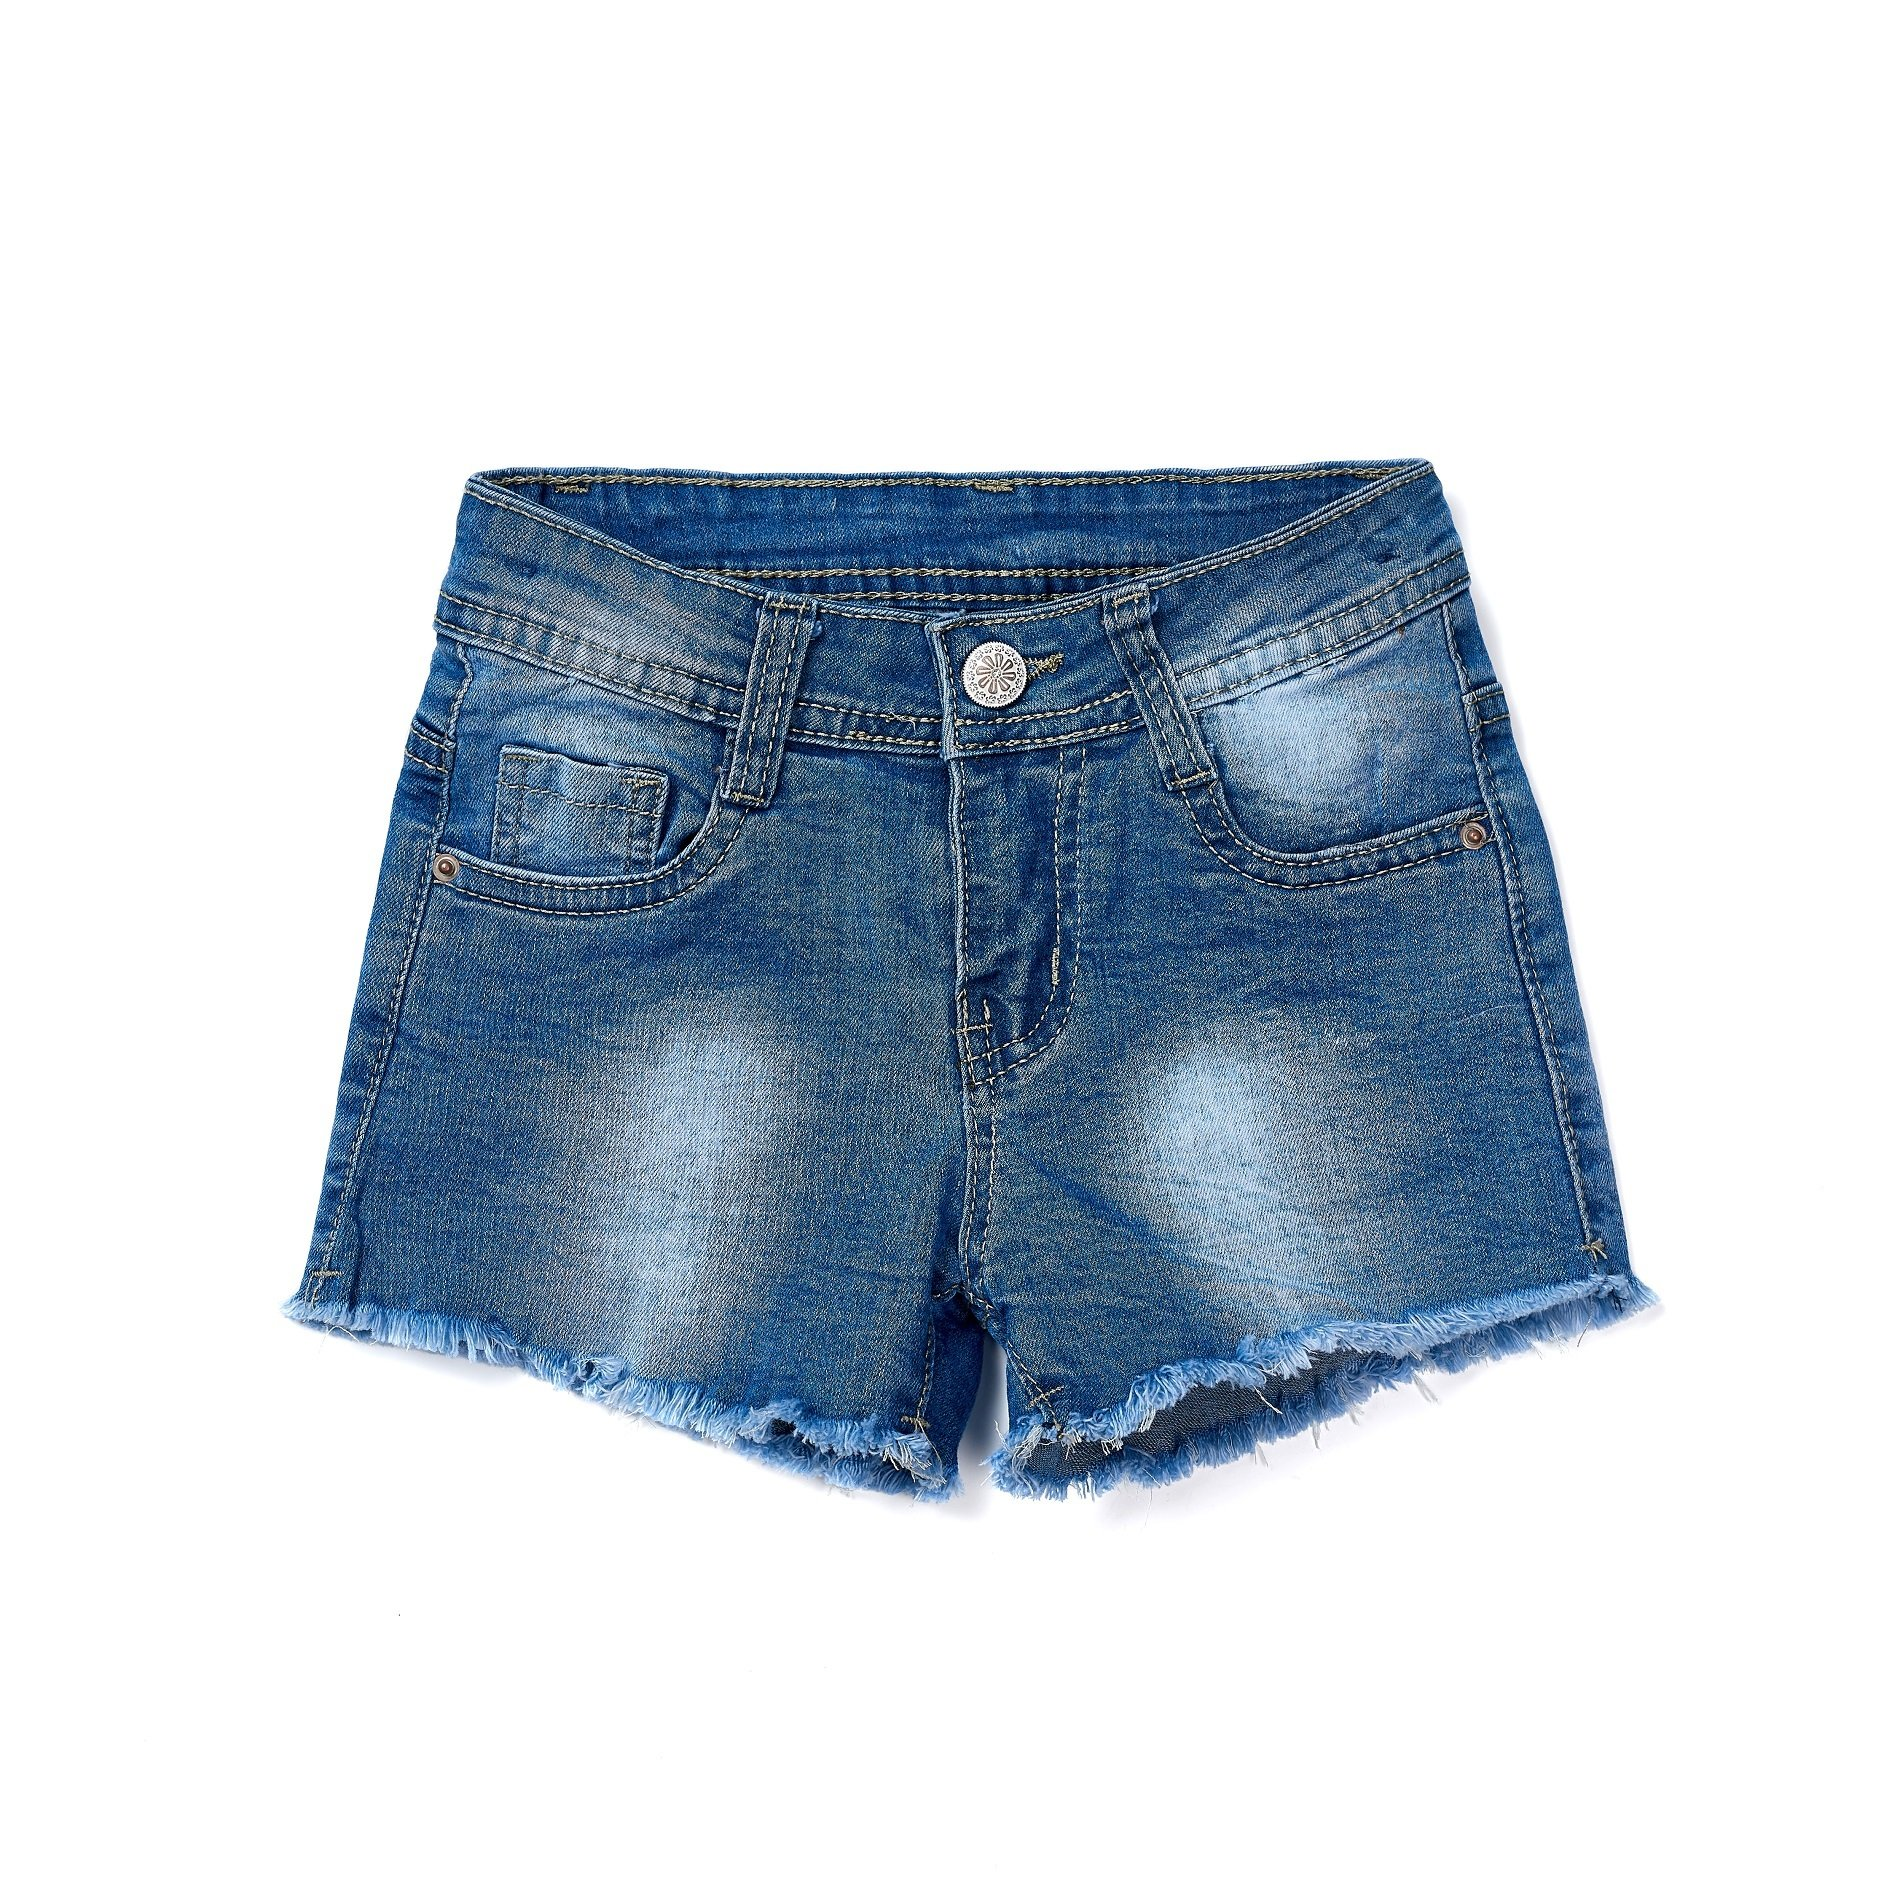 ISPED Girls Jean Shorts for Teen Girls Ripped Girls Shorts Summer Floral Embroided Denim Jean Shorts Size 14T